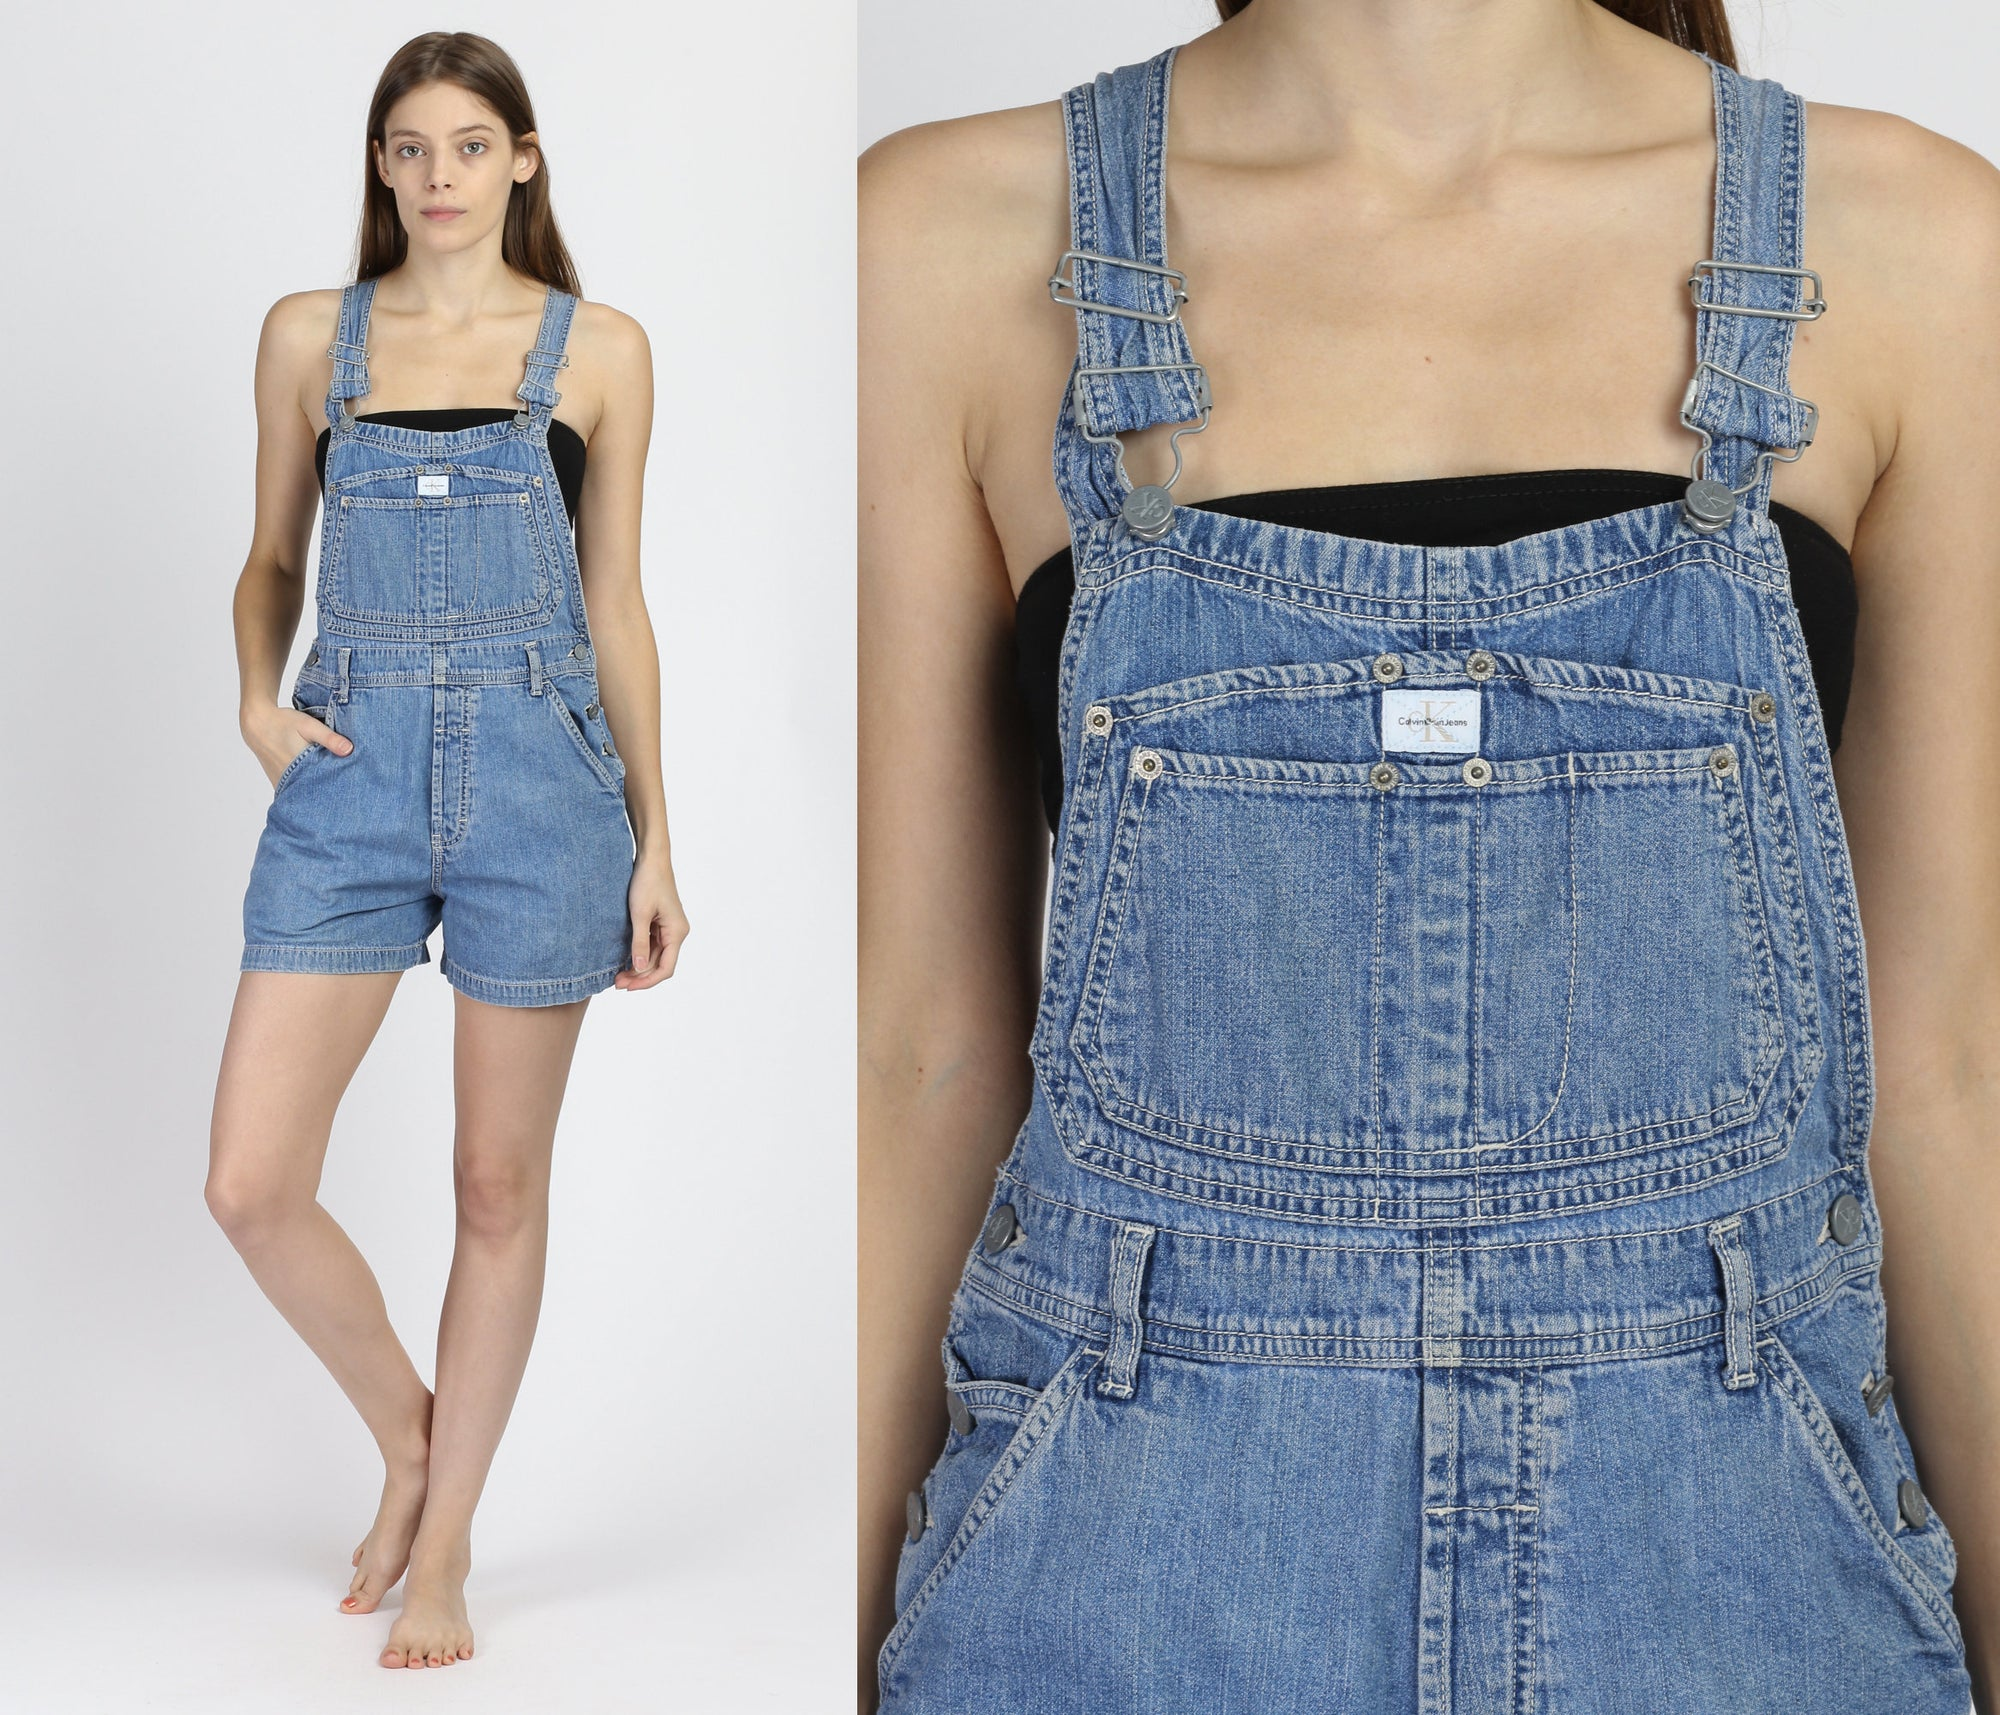 90s Calvin Klein Denim Overall Shorts - Medium